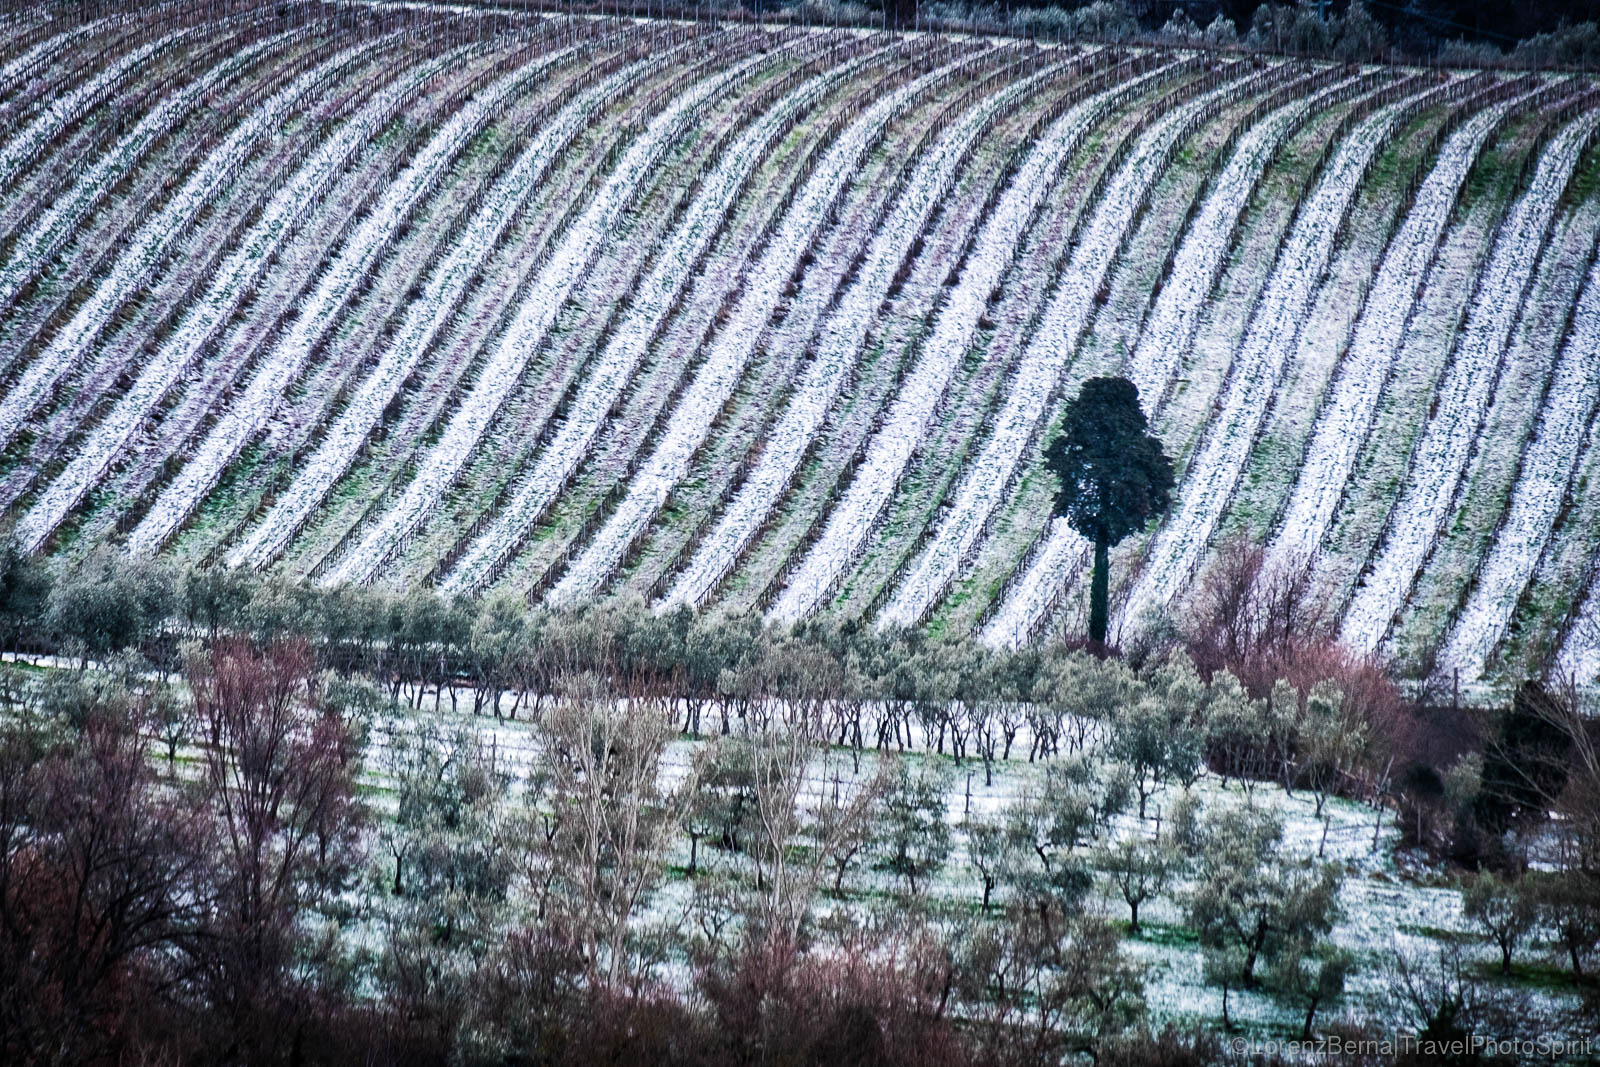 Field patterns in the snow, Italy